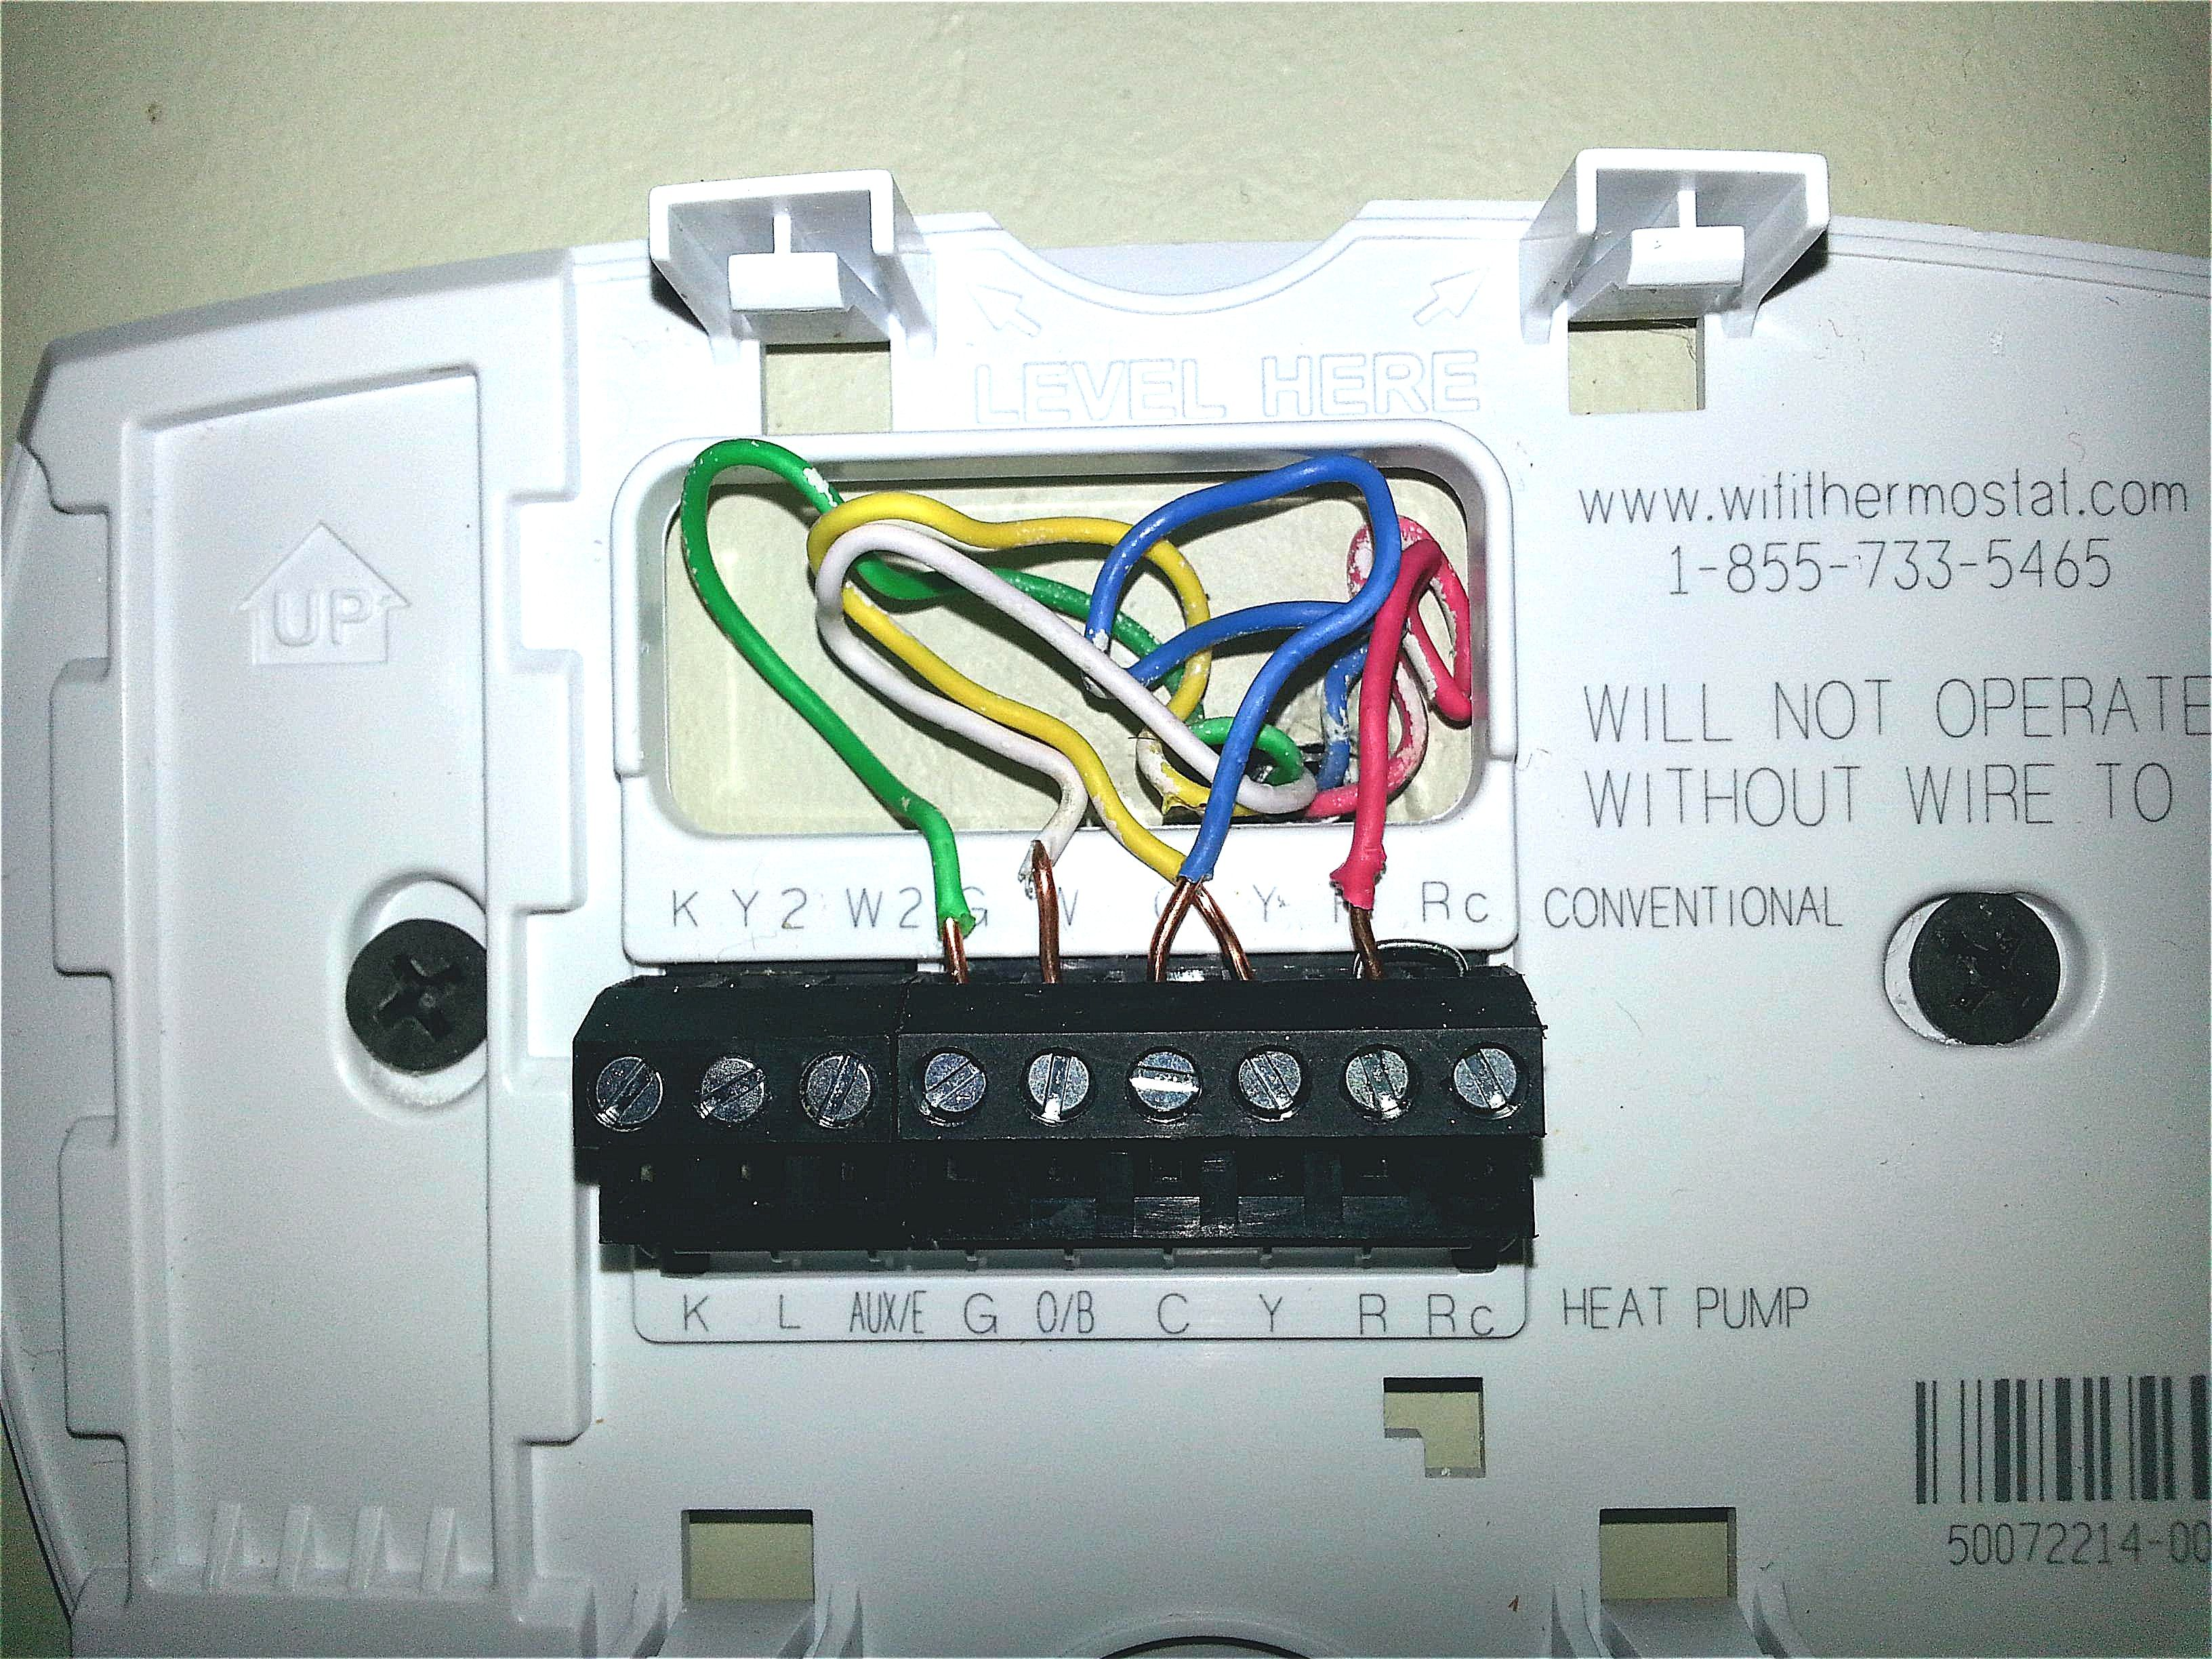 Pictures Of Wiring Diagram For Honeywell Thermostat Rth221 5 2 Day Throughout Honeywell Thermostats Heater Thermostat Honeywell Wifi Thermostat